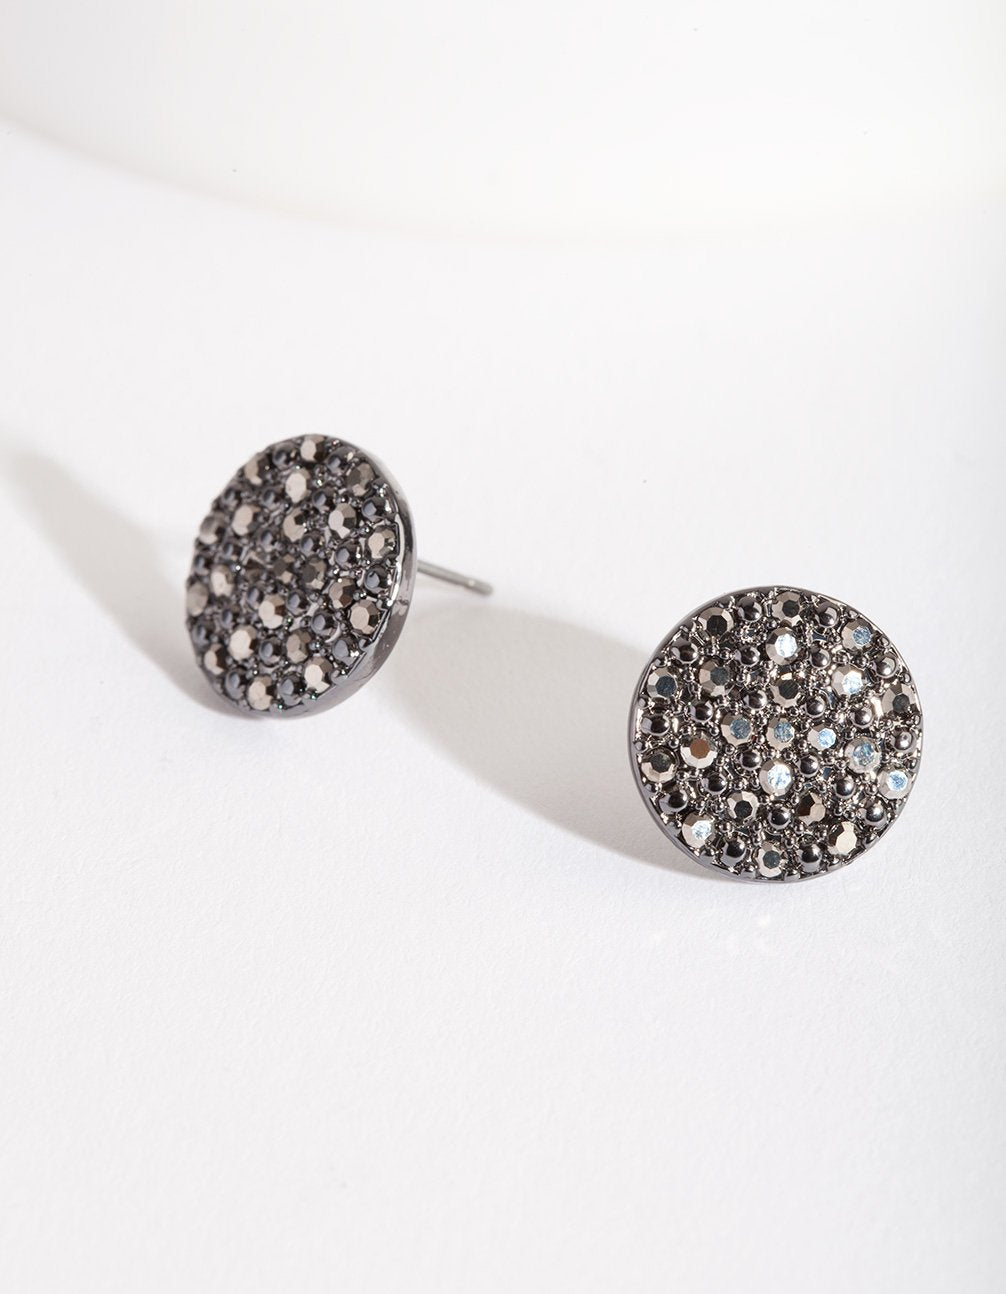 Gunmetal Diamante Speckled Stud Earring